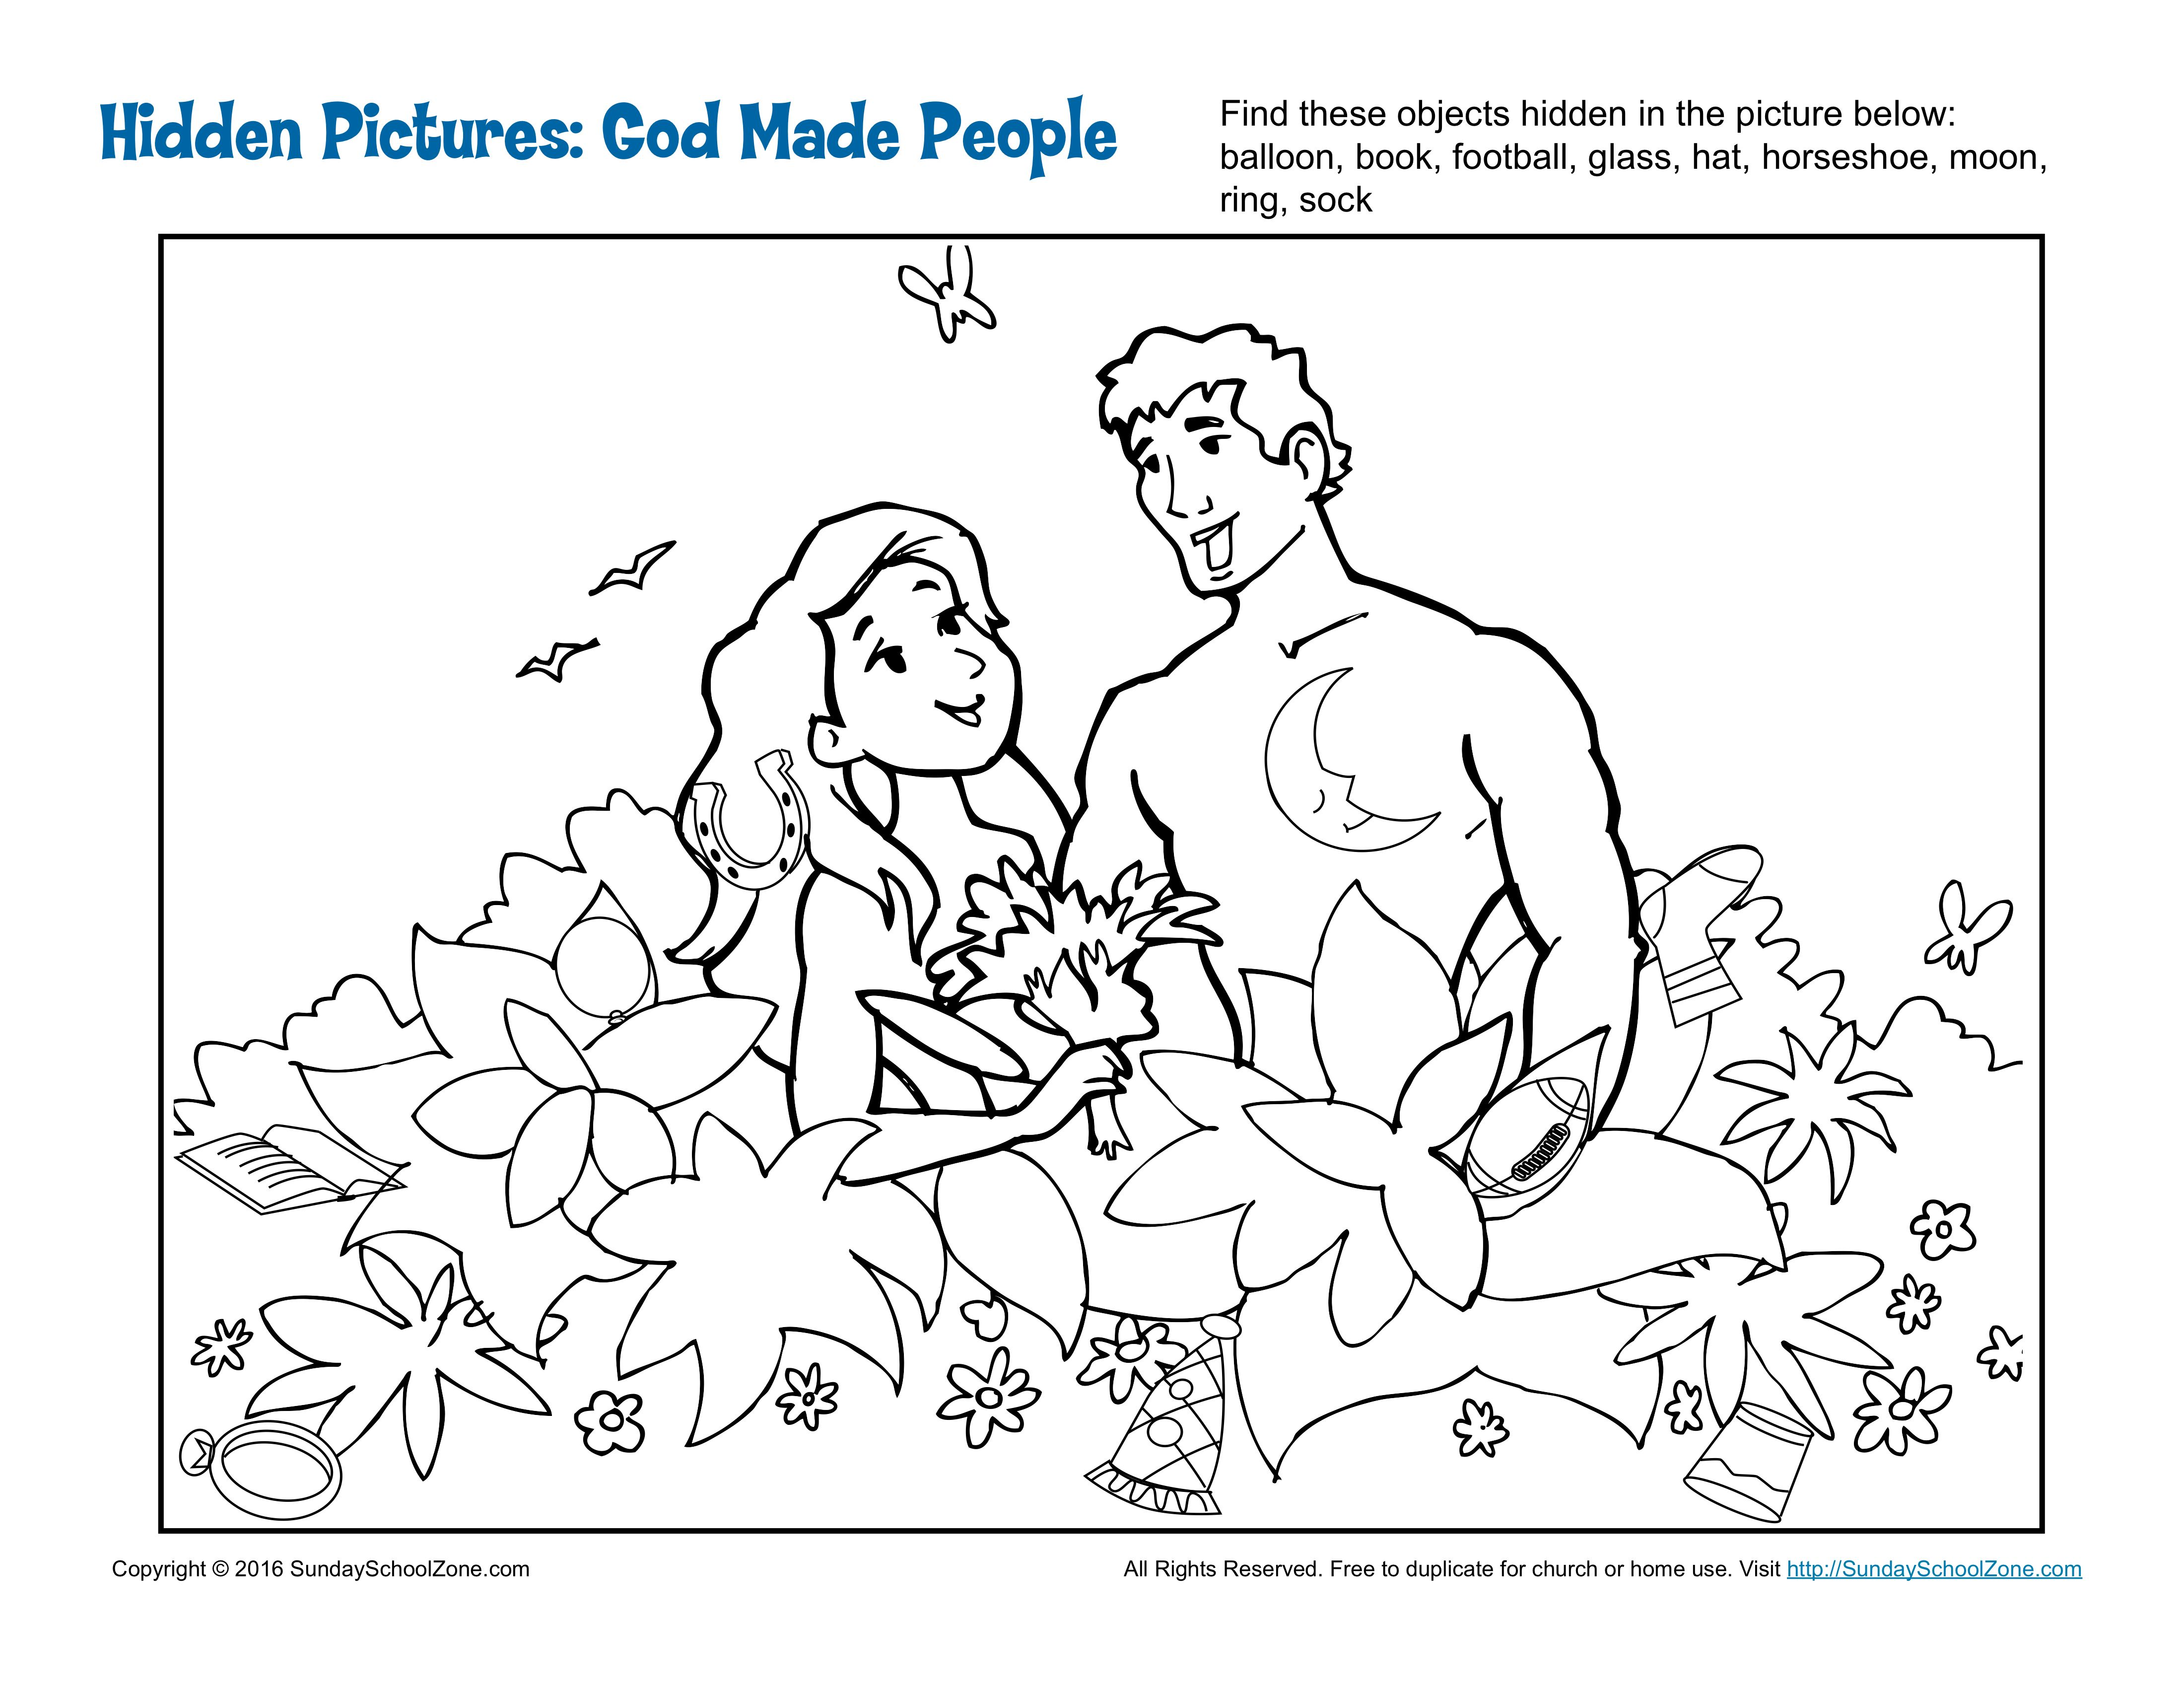 God Made People Hidden Pictures | Bible activities, Sunday ...